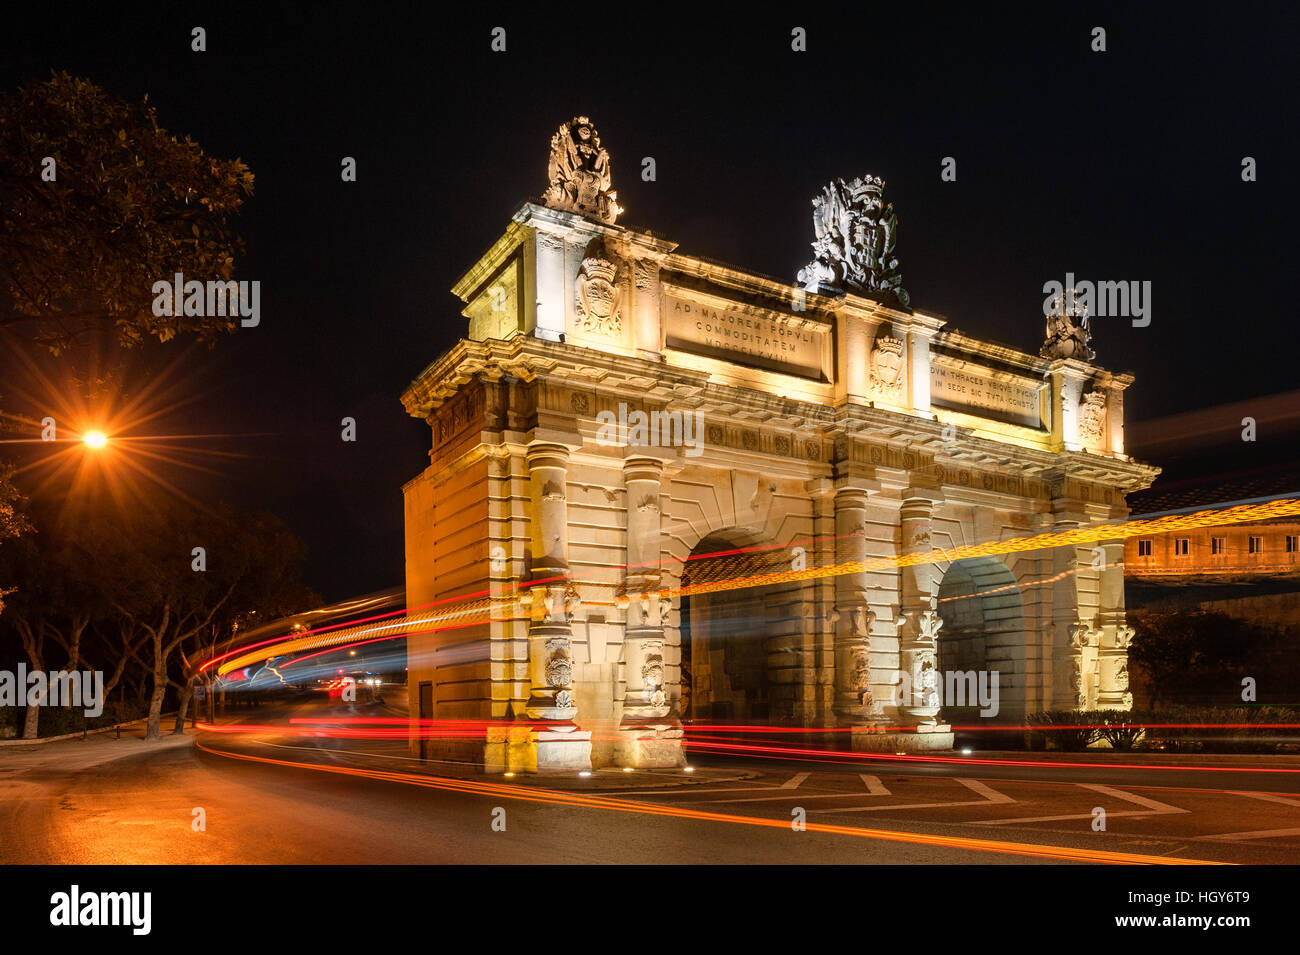 Bombs' Gate in Floriana Malta - Stock Image